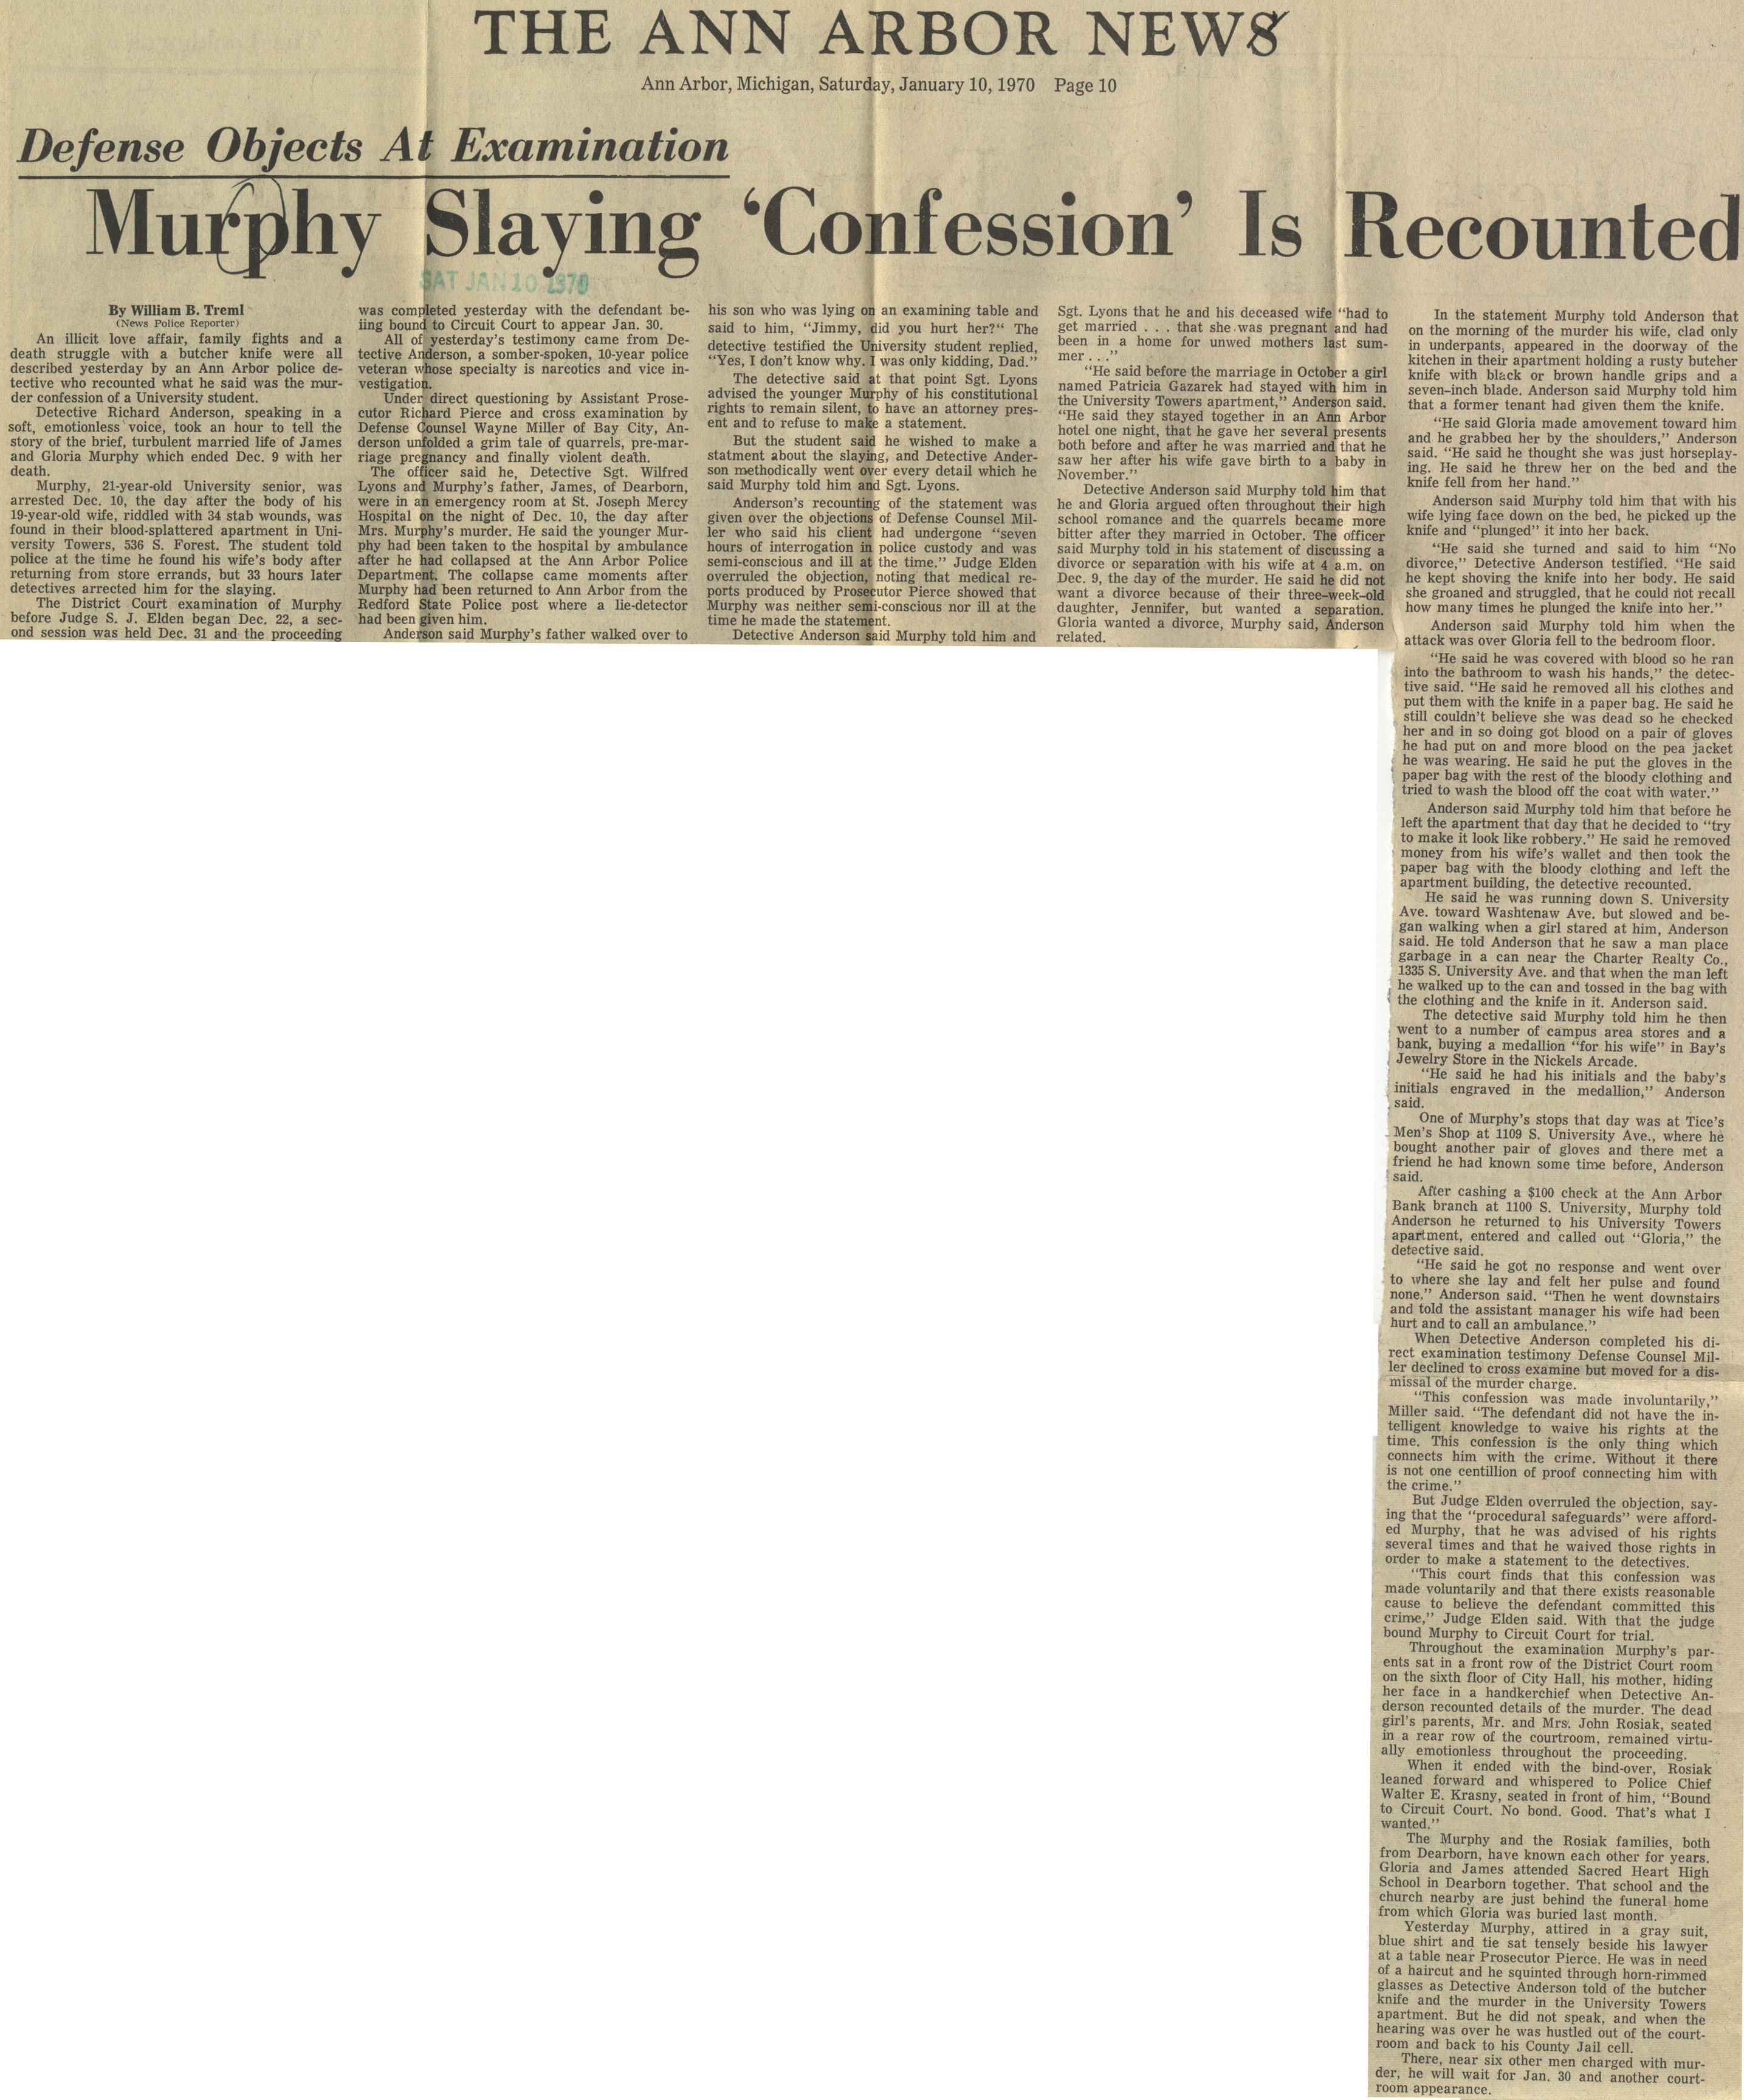 Murphy Slaying Confession Is Recounted image